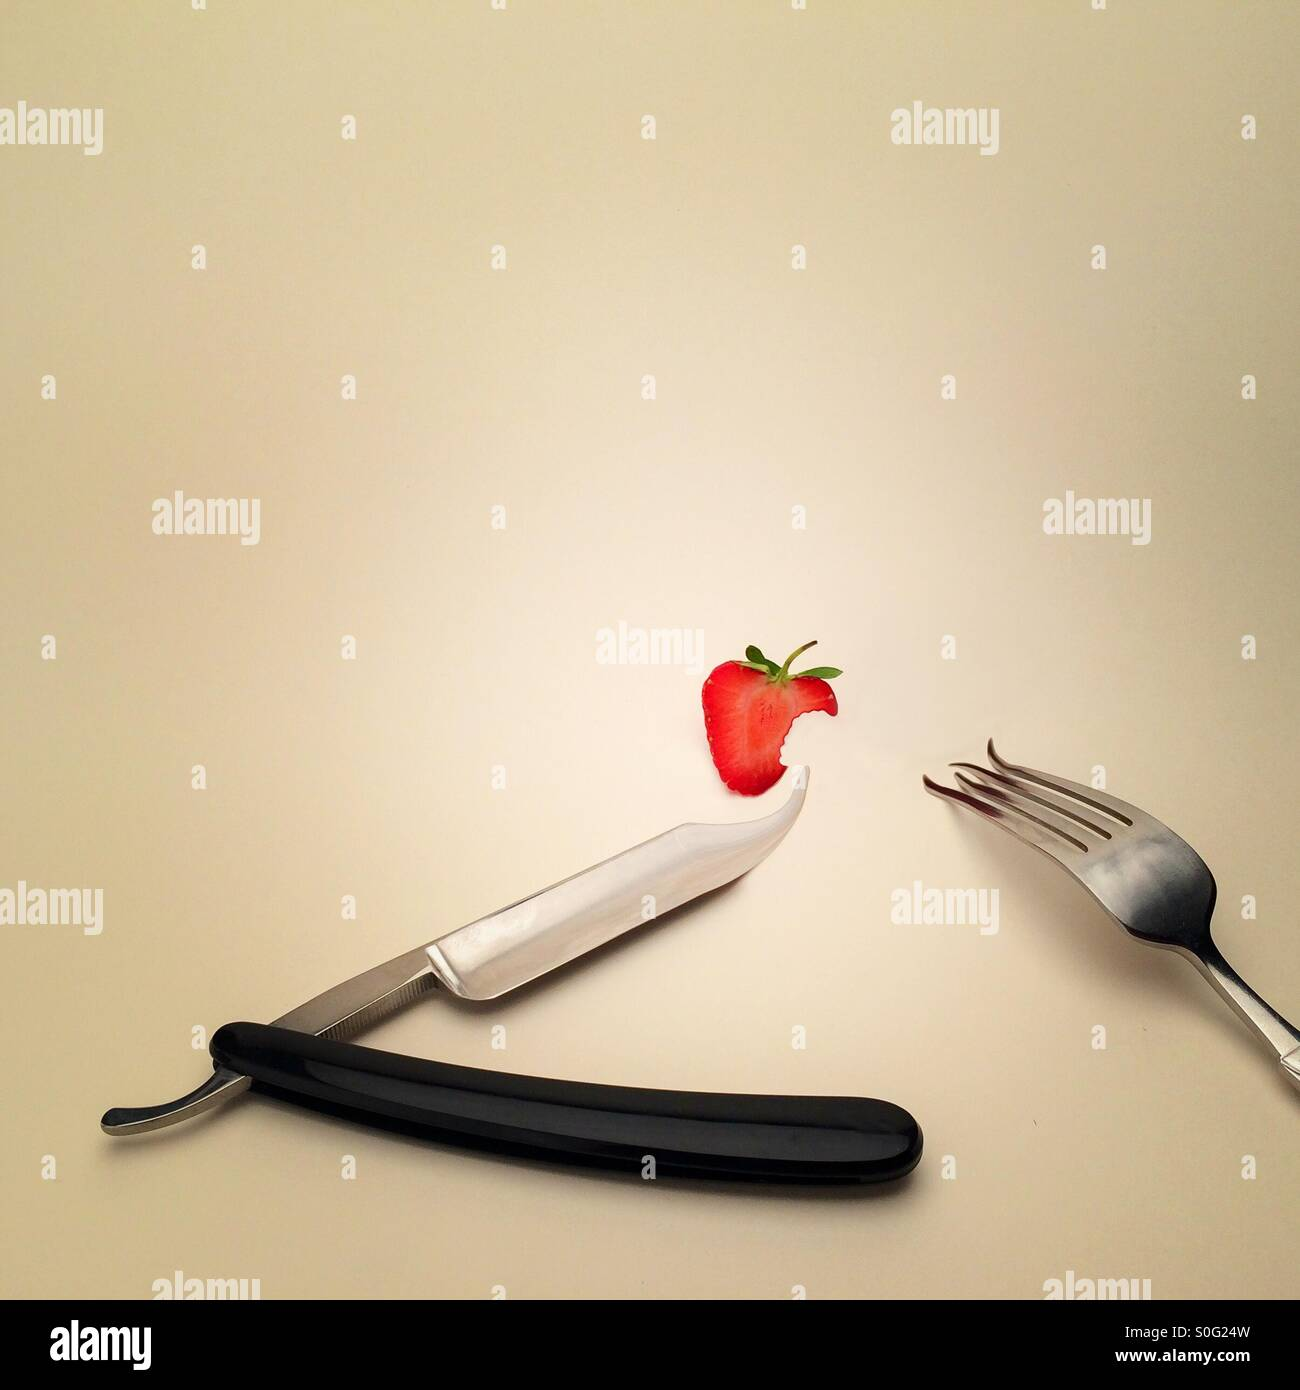 Cut throat razor knife fork and strawberry ( digitally manipulated image) showing a strange and surreal dinner place - Stock Image